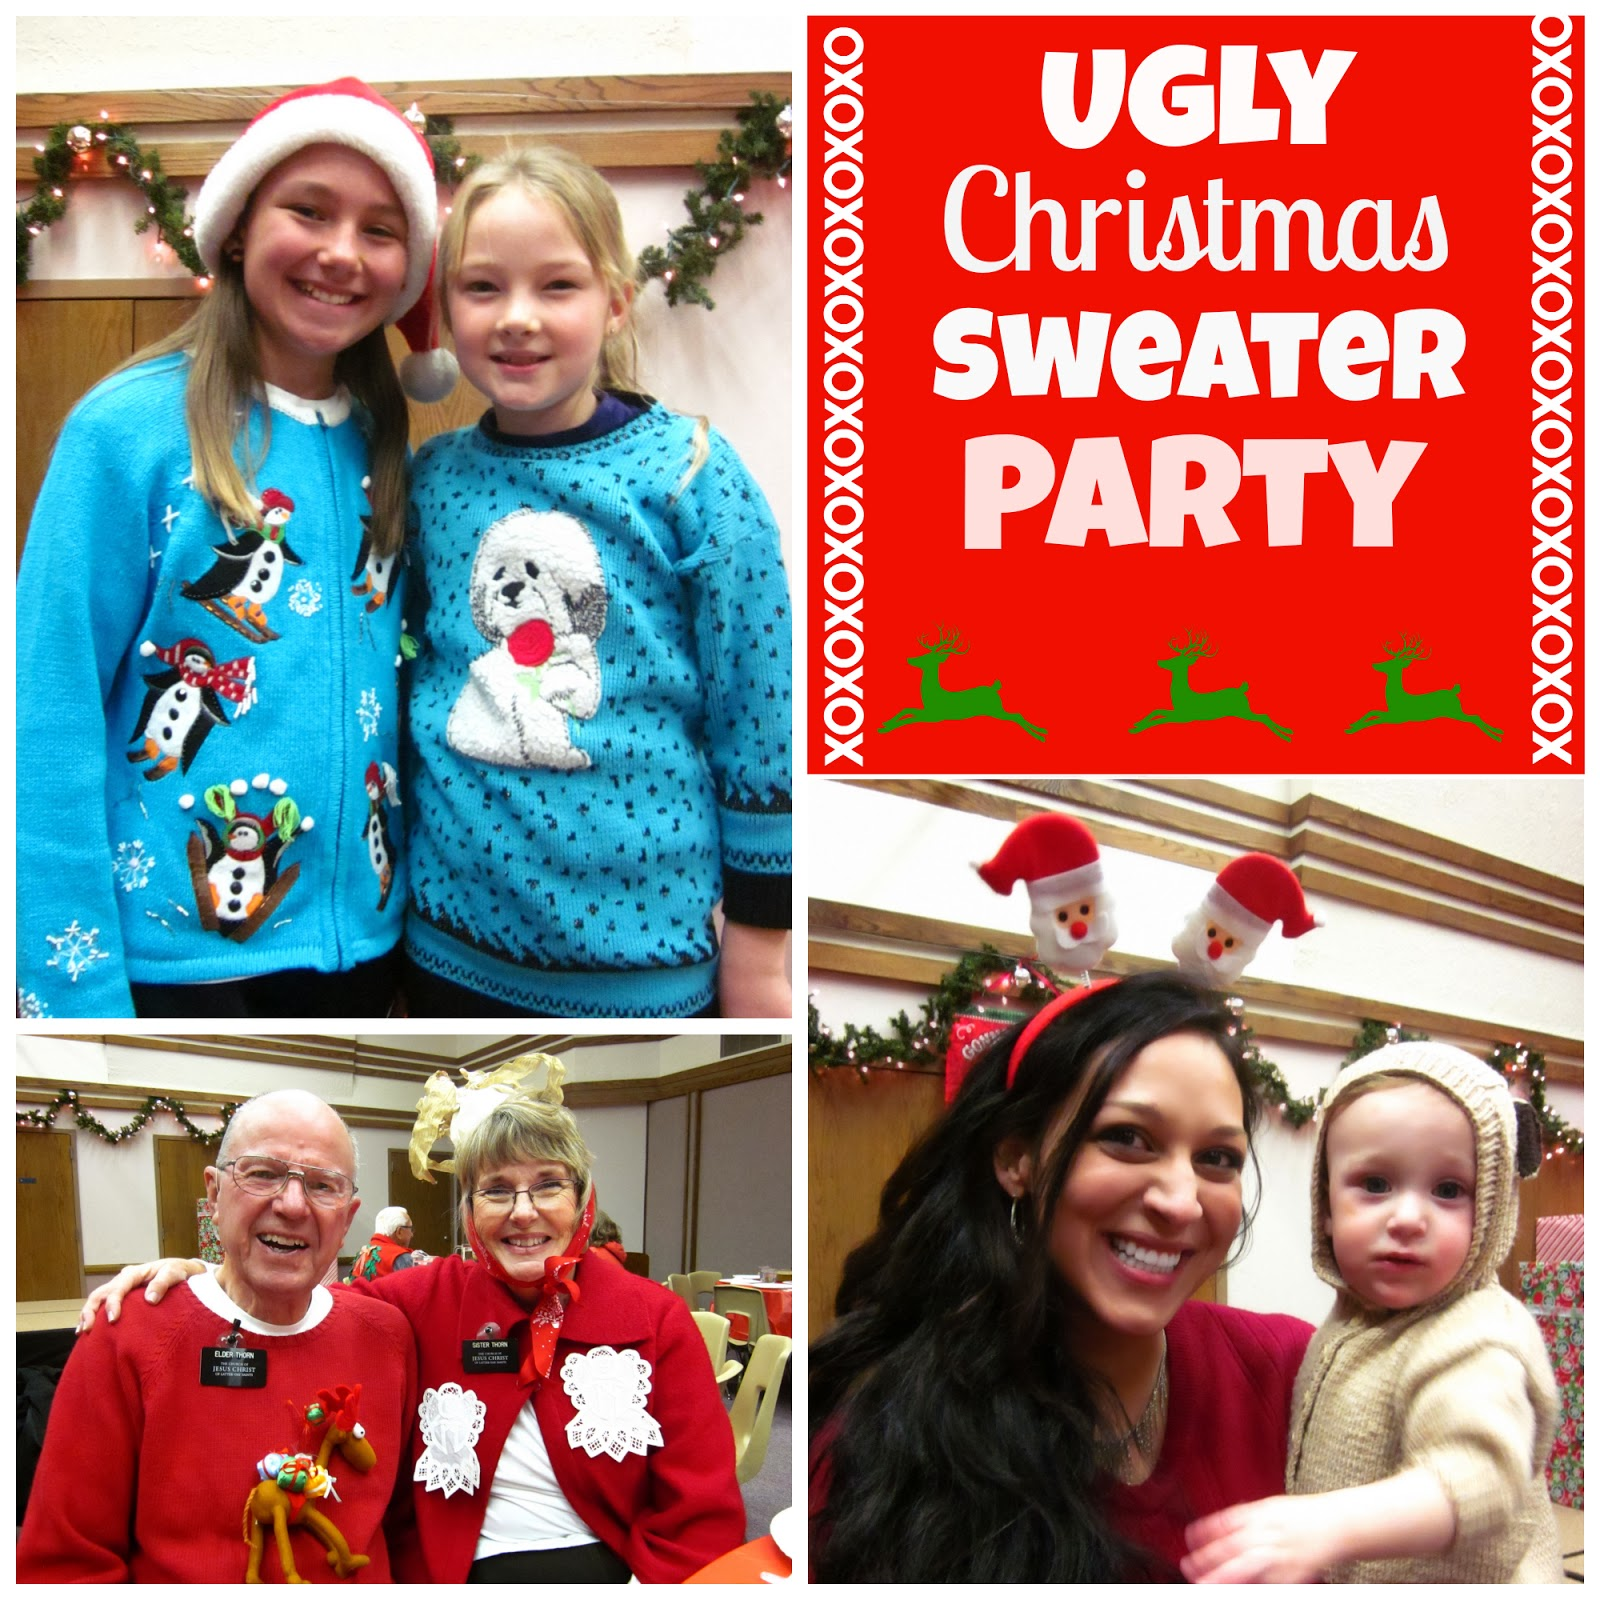 Ugly Christmas Party Sweaters: Honey I'm Home: Ugly Christmas Sweater Party Fun